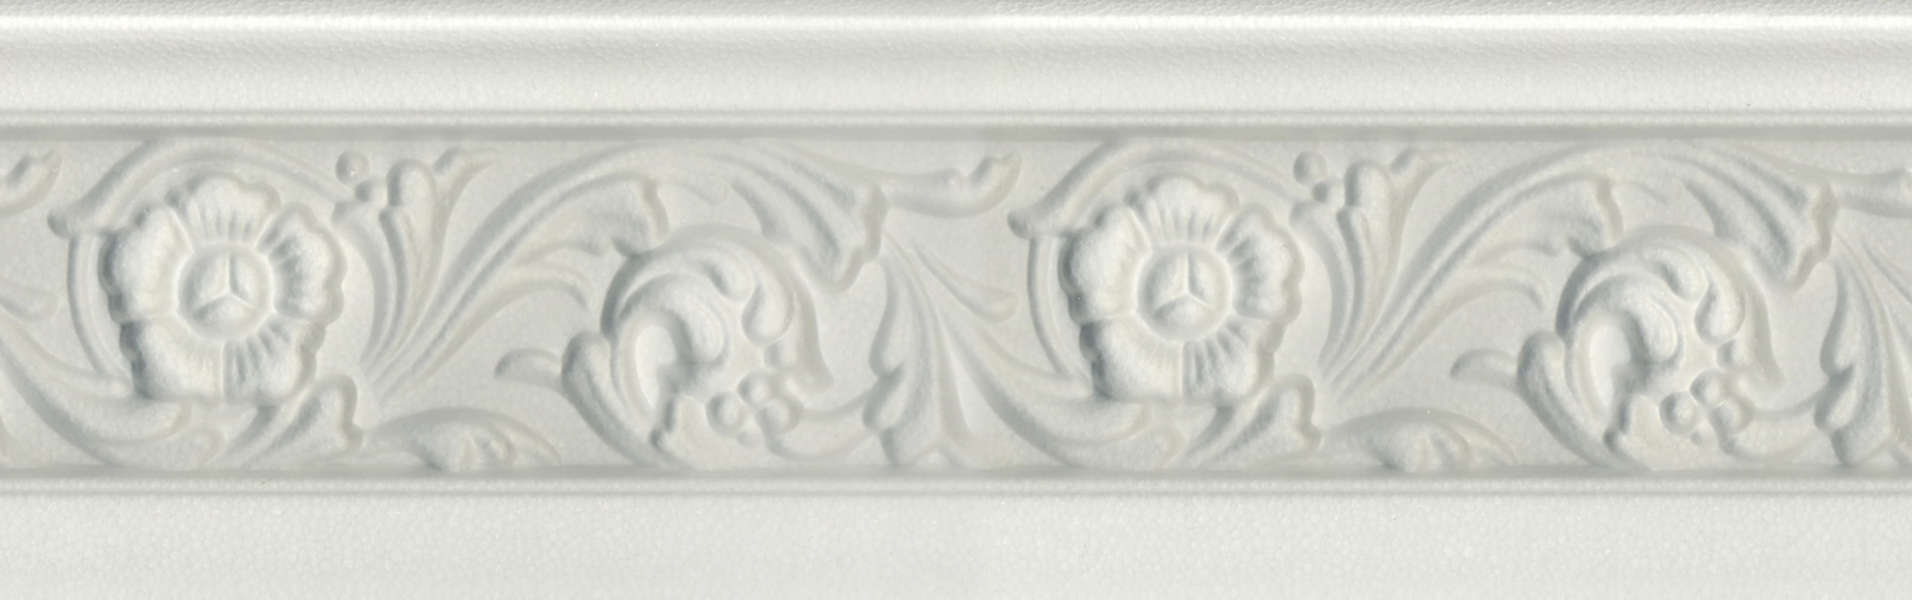 Ornamentborder0094 Free Background Texture Moulding